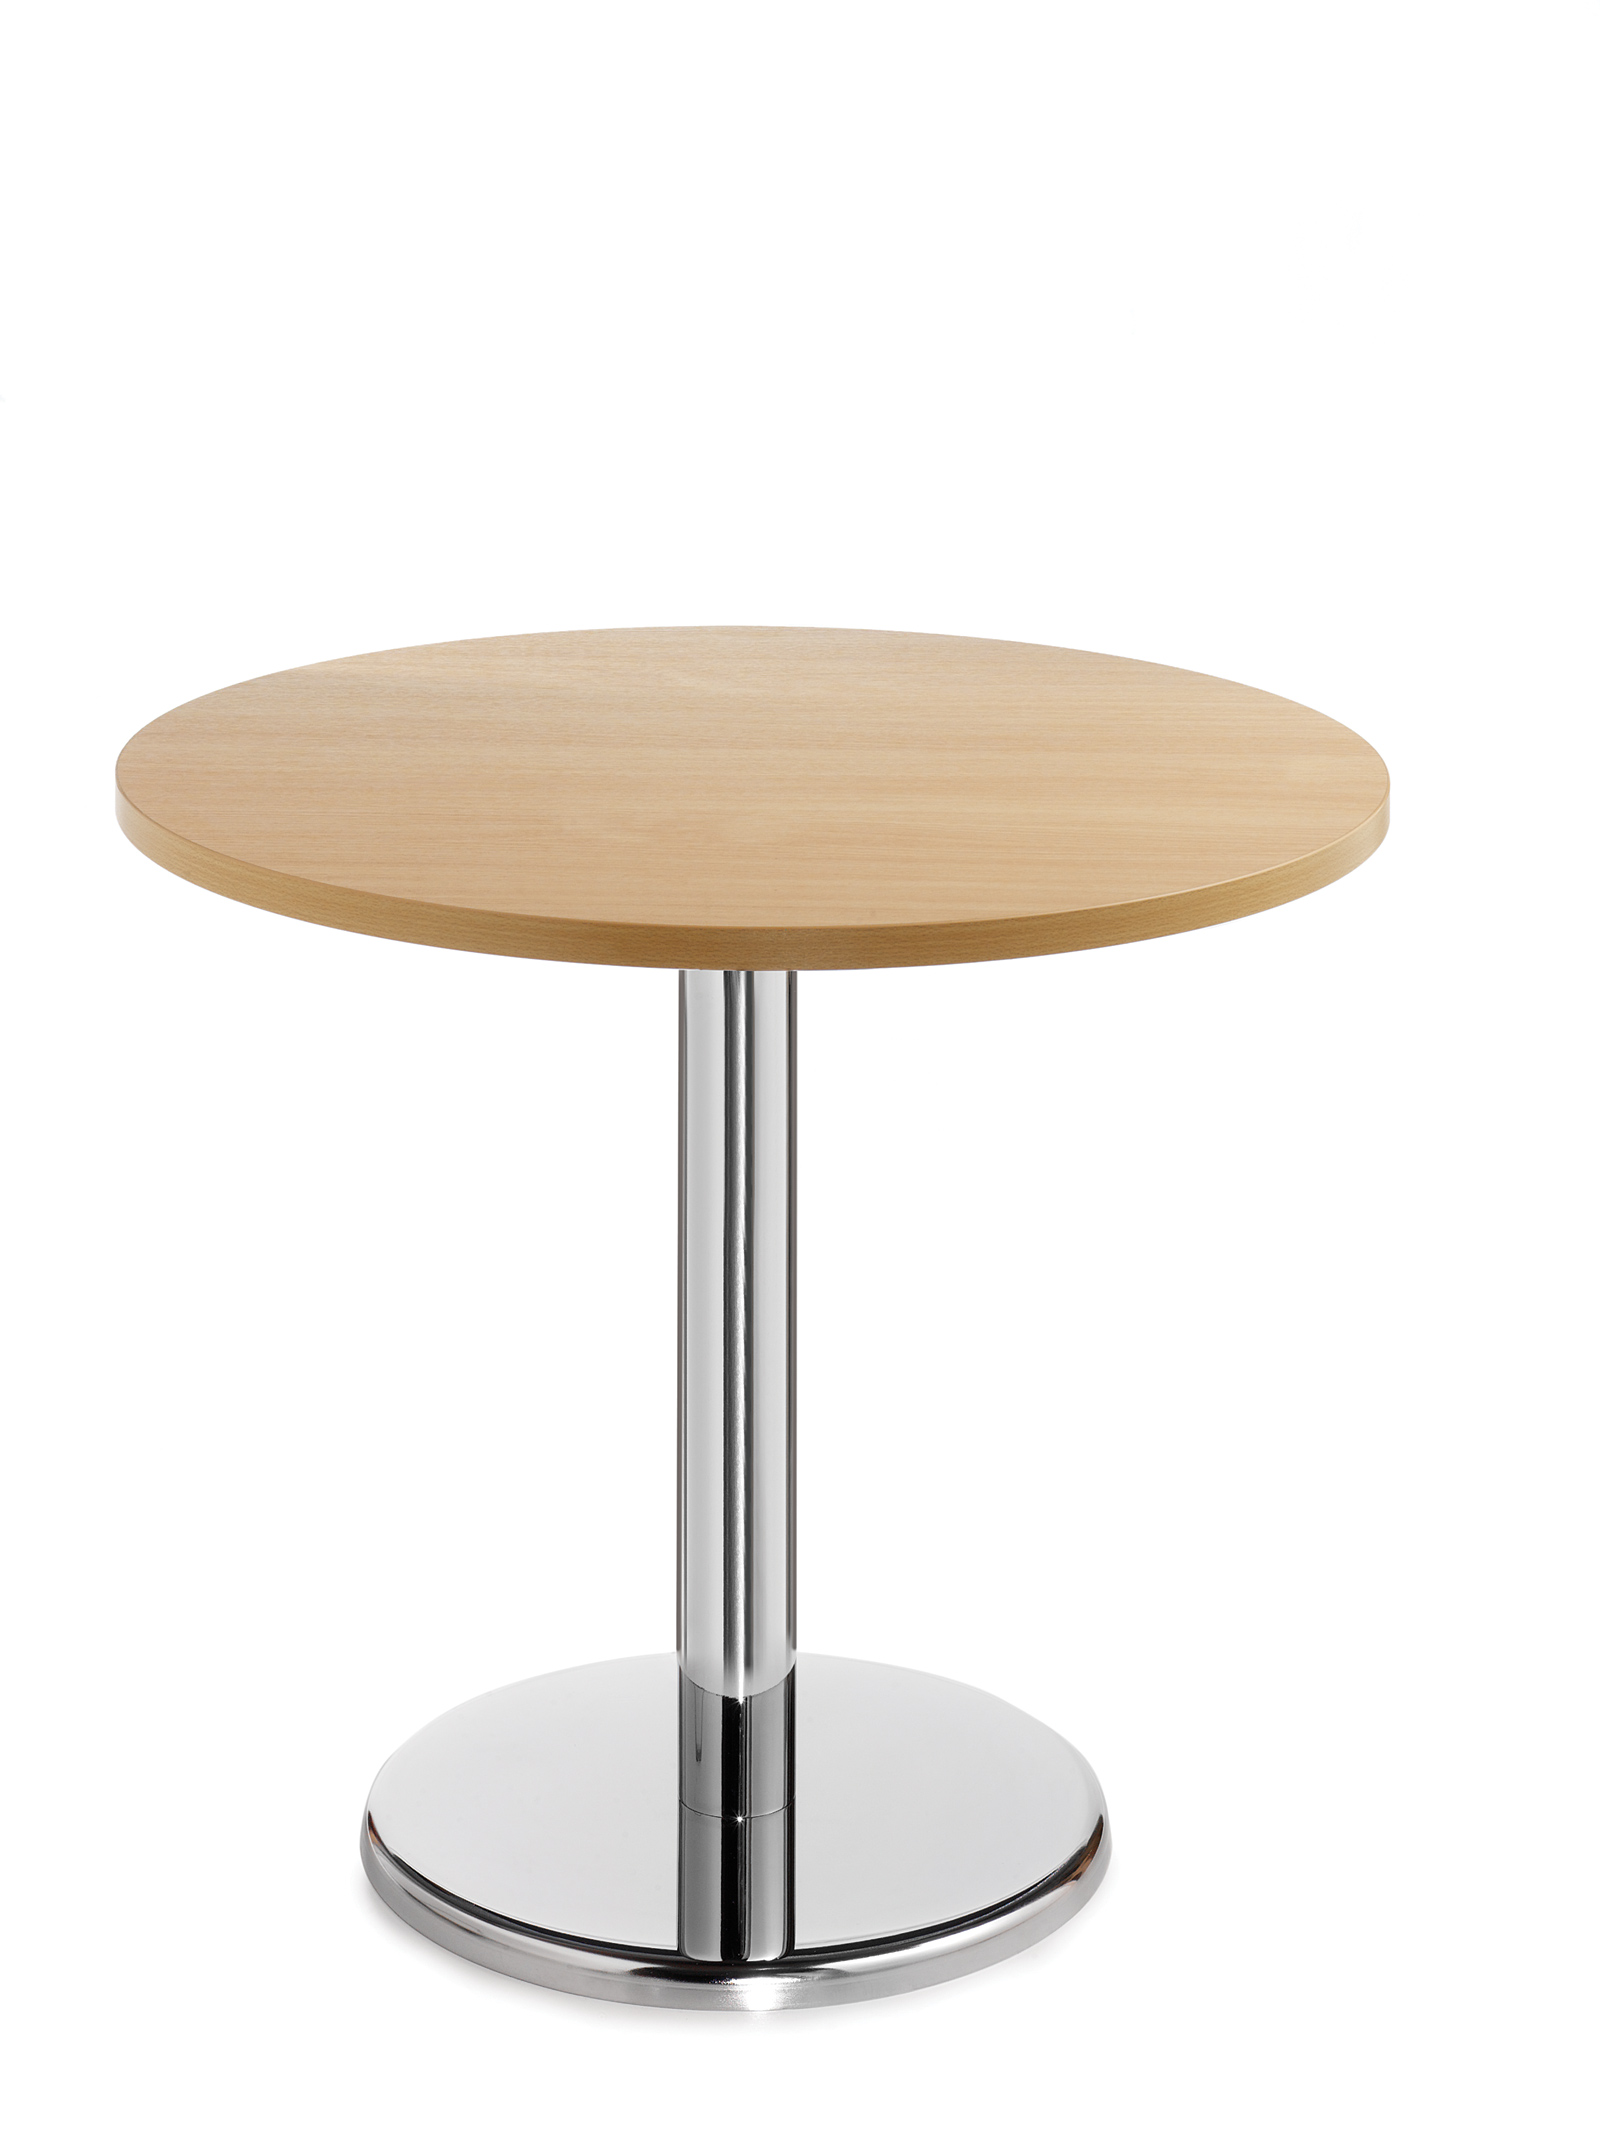 Pisa circular table with round chrome base 600mm - beech